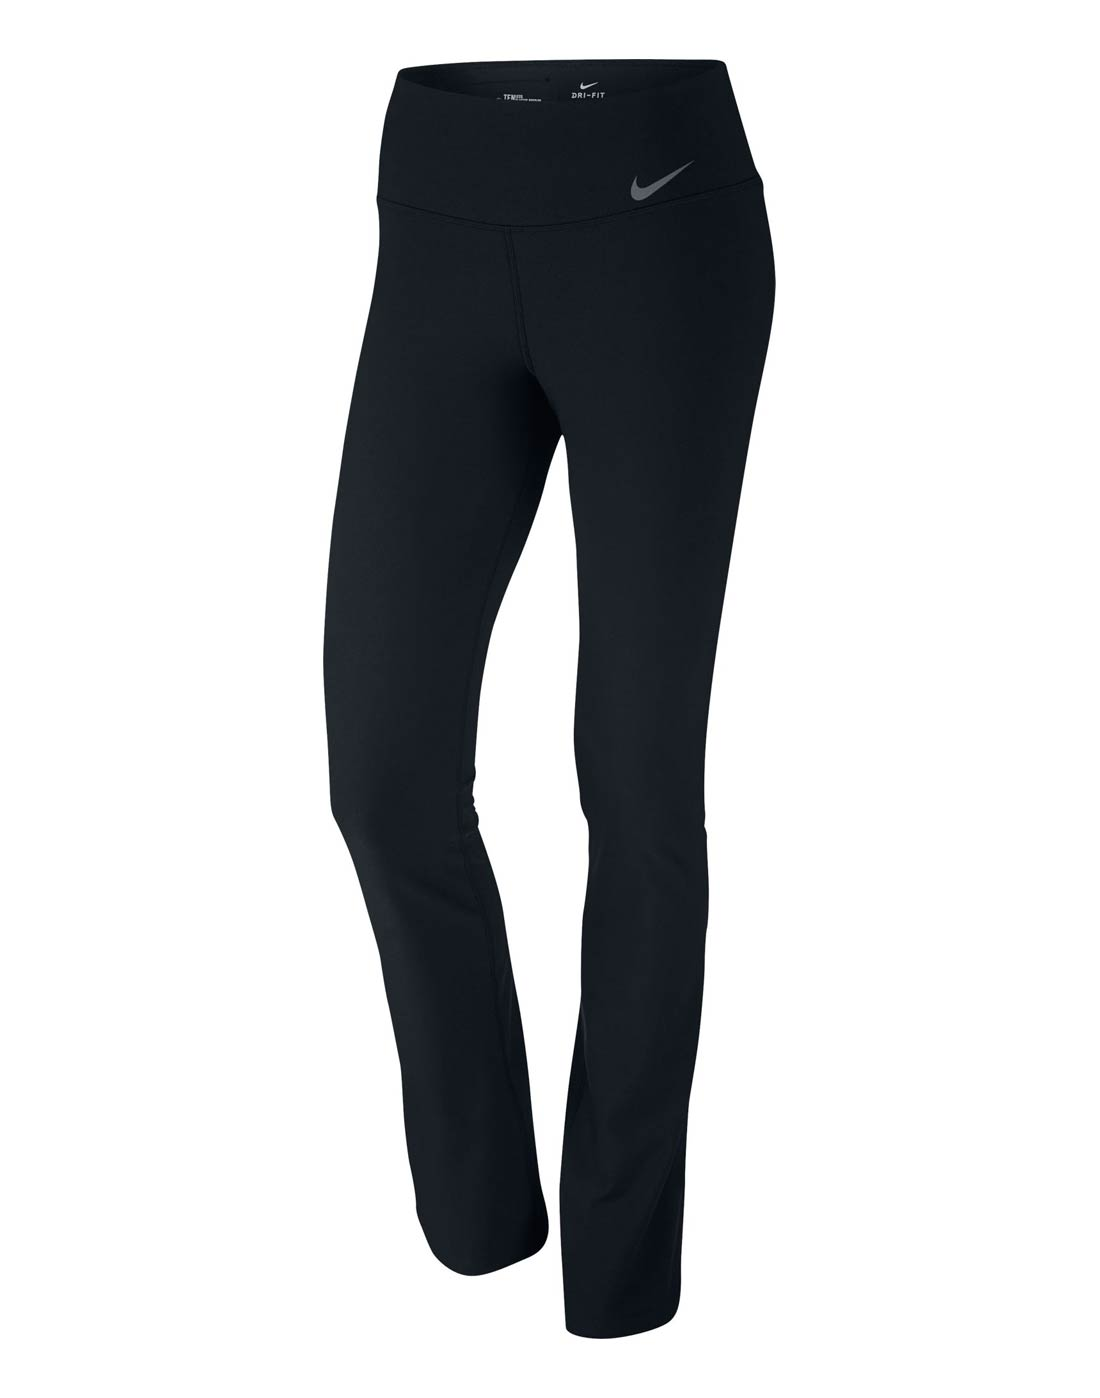 28ba588c3f02b Nike Womens Power Legend Skinny Pant | Life Style Sports